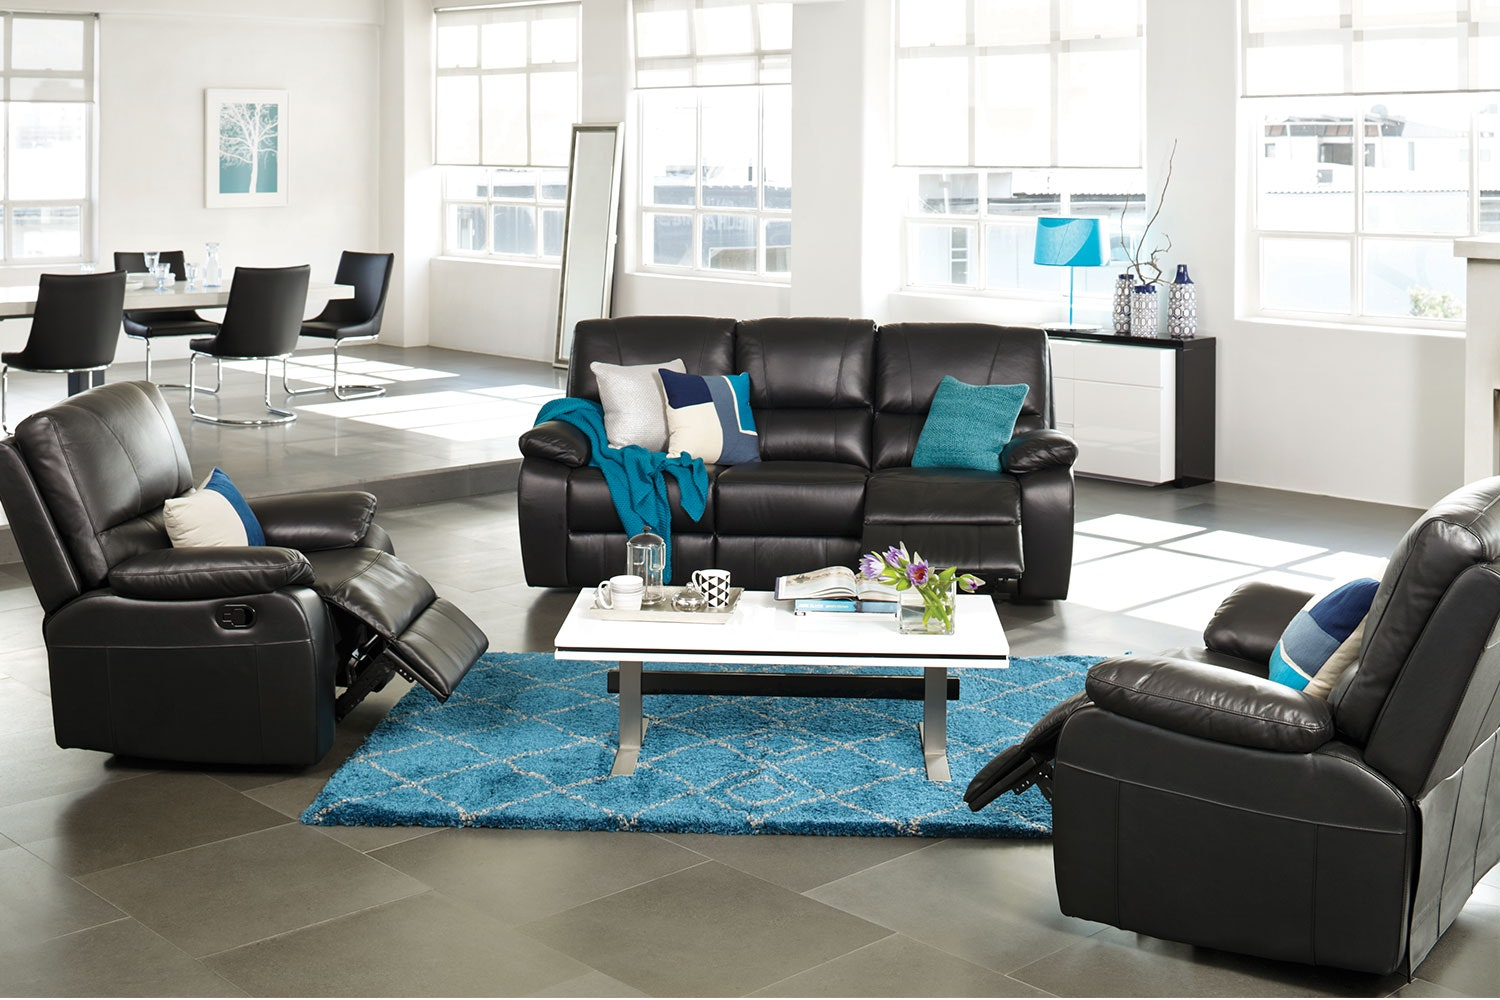 Angelina 3 Piece Leather Recliner Lounge Suite & Angelina 3 Piece Leather Recliner Lounge Suite | Harvey Norman New ... islam-shia.org